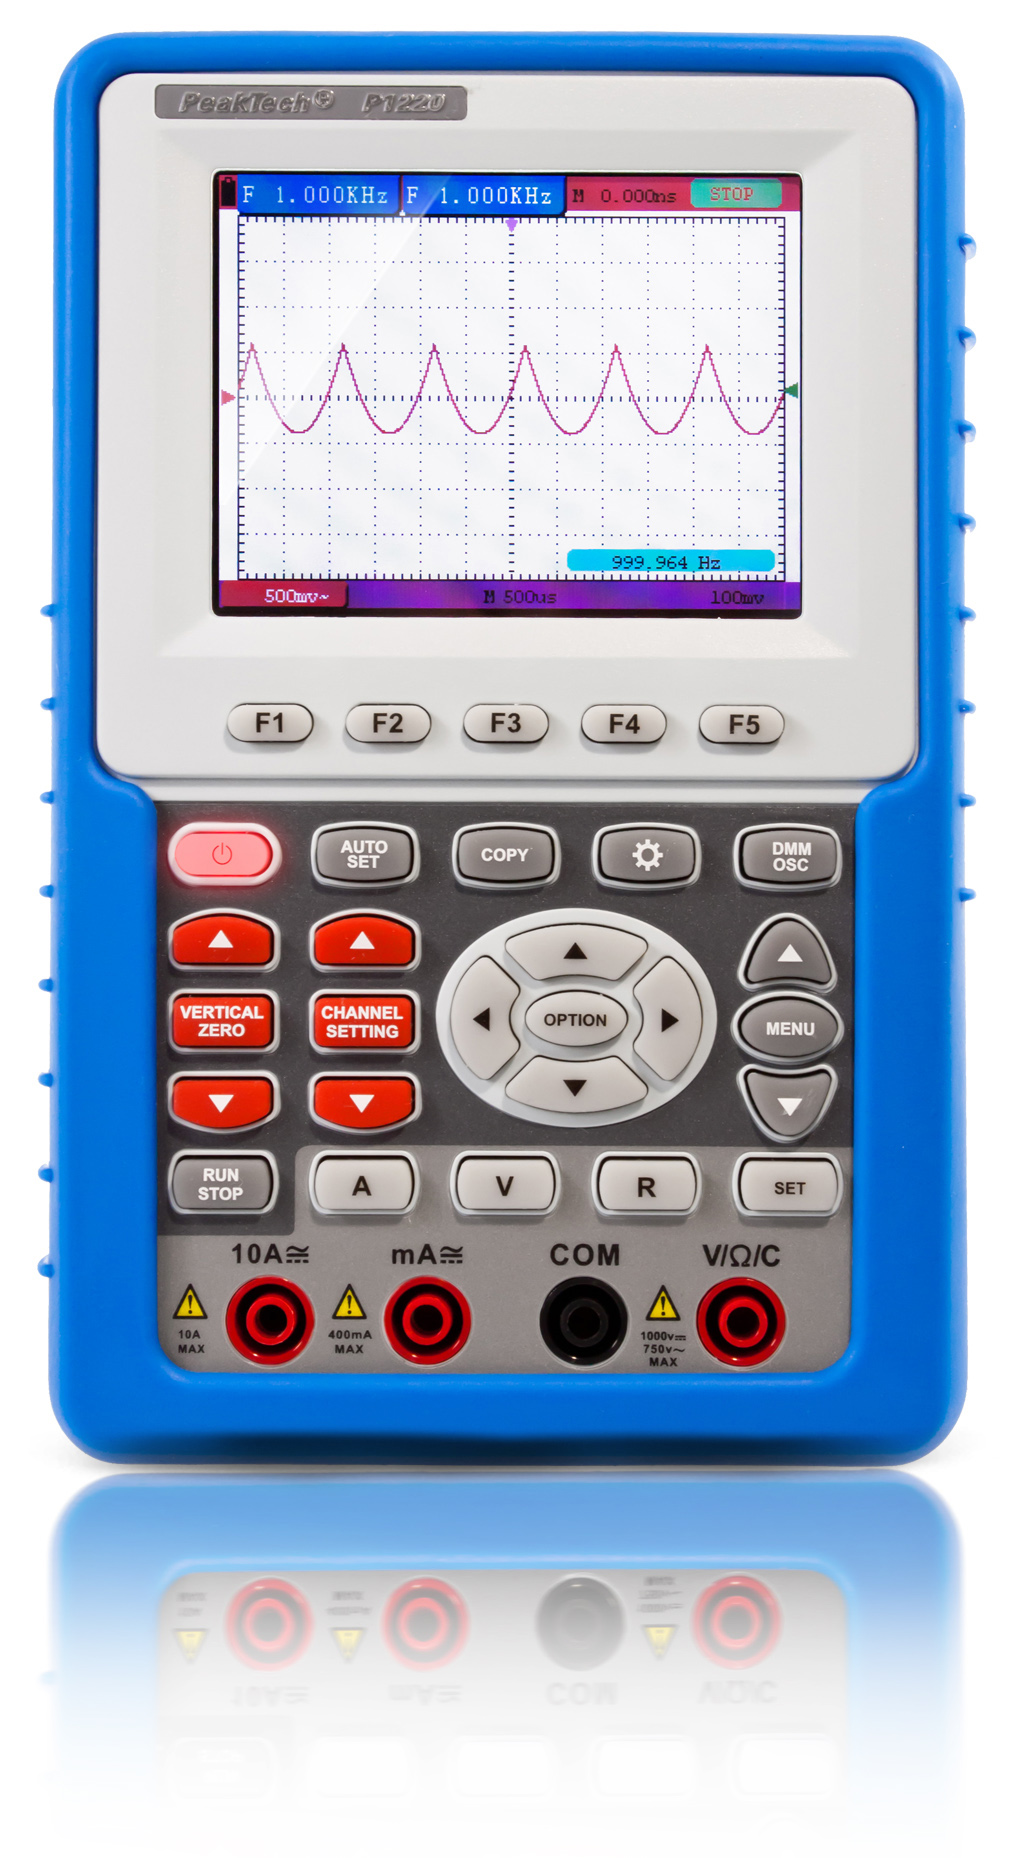 «PeakTech® P 1220» 20 MHz / 1 CH, 100 MS / s handheld oscilloscope